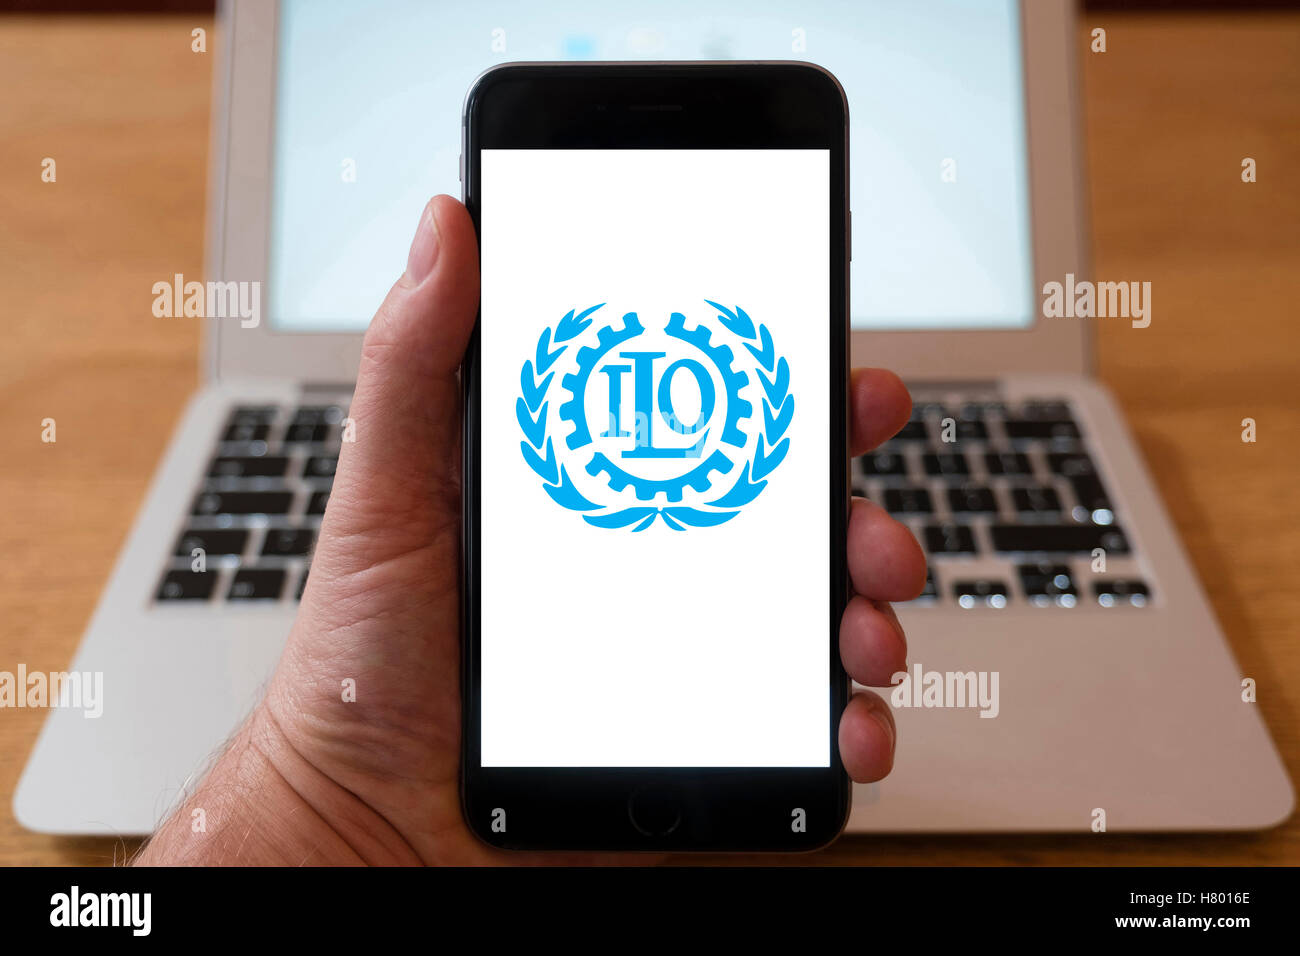 Using iPhone smartphone to display logo of ILO, International Labour Organization. UN agency to set labour standards. - Stock Image